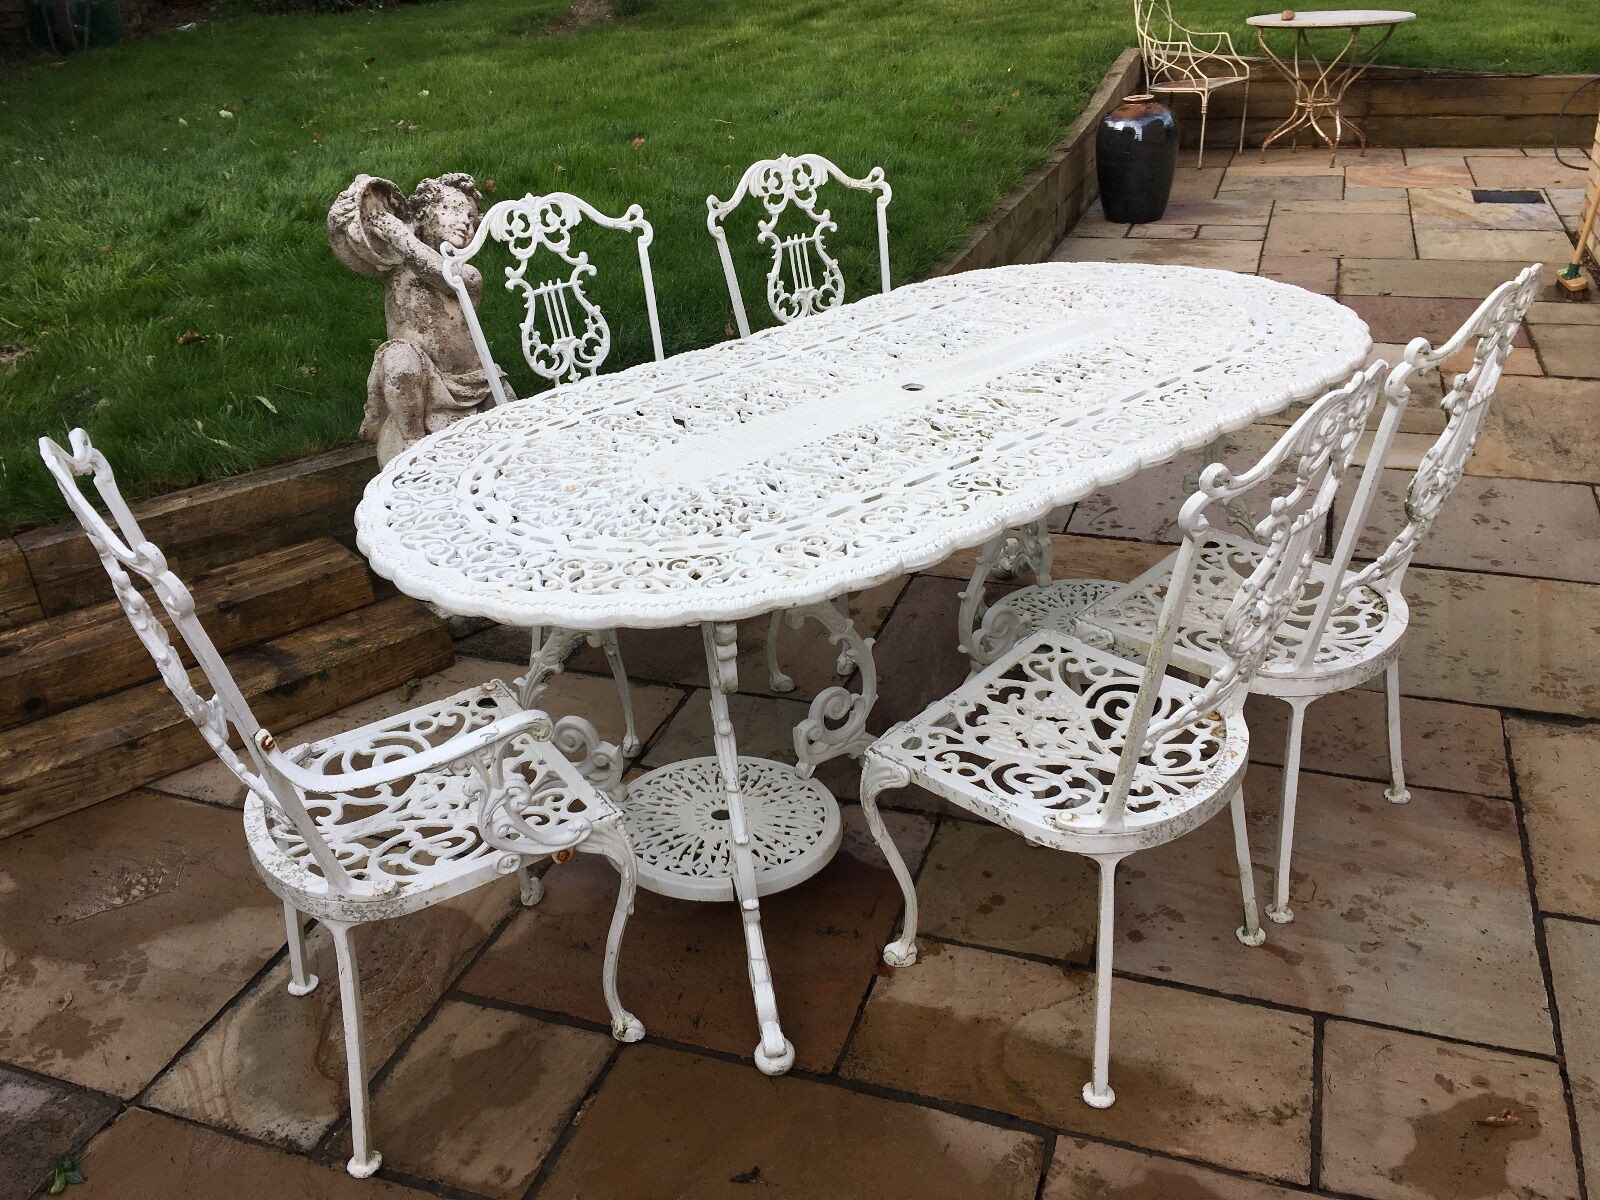 Best ideas about Cast Iron Patio Furniture . Save or Pin CAST IRON GARDEN furniture Table and 5 Chairs White Now.